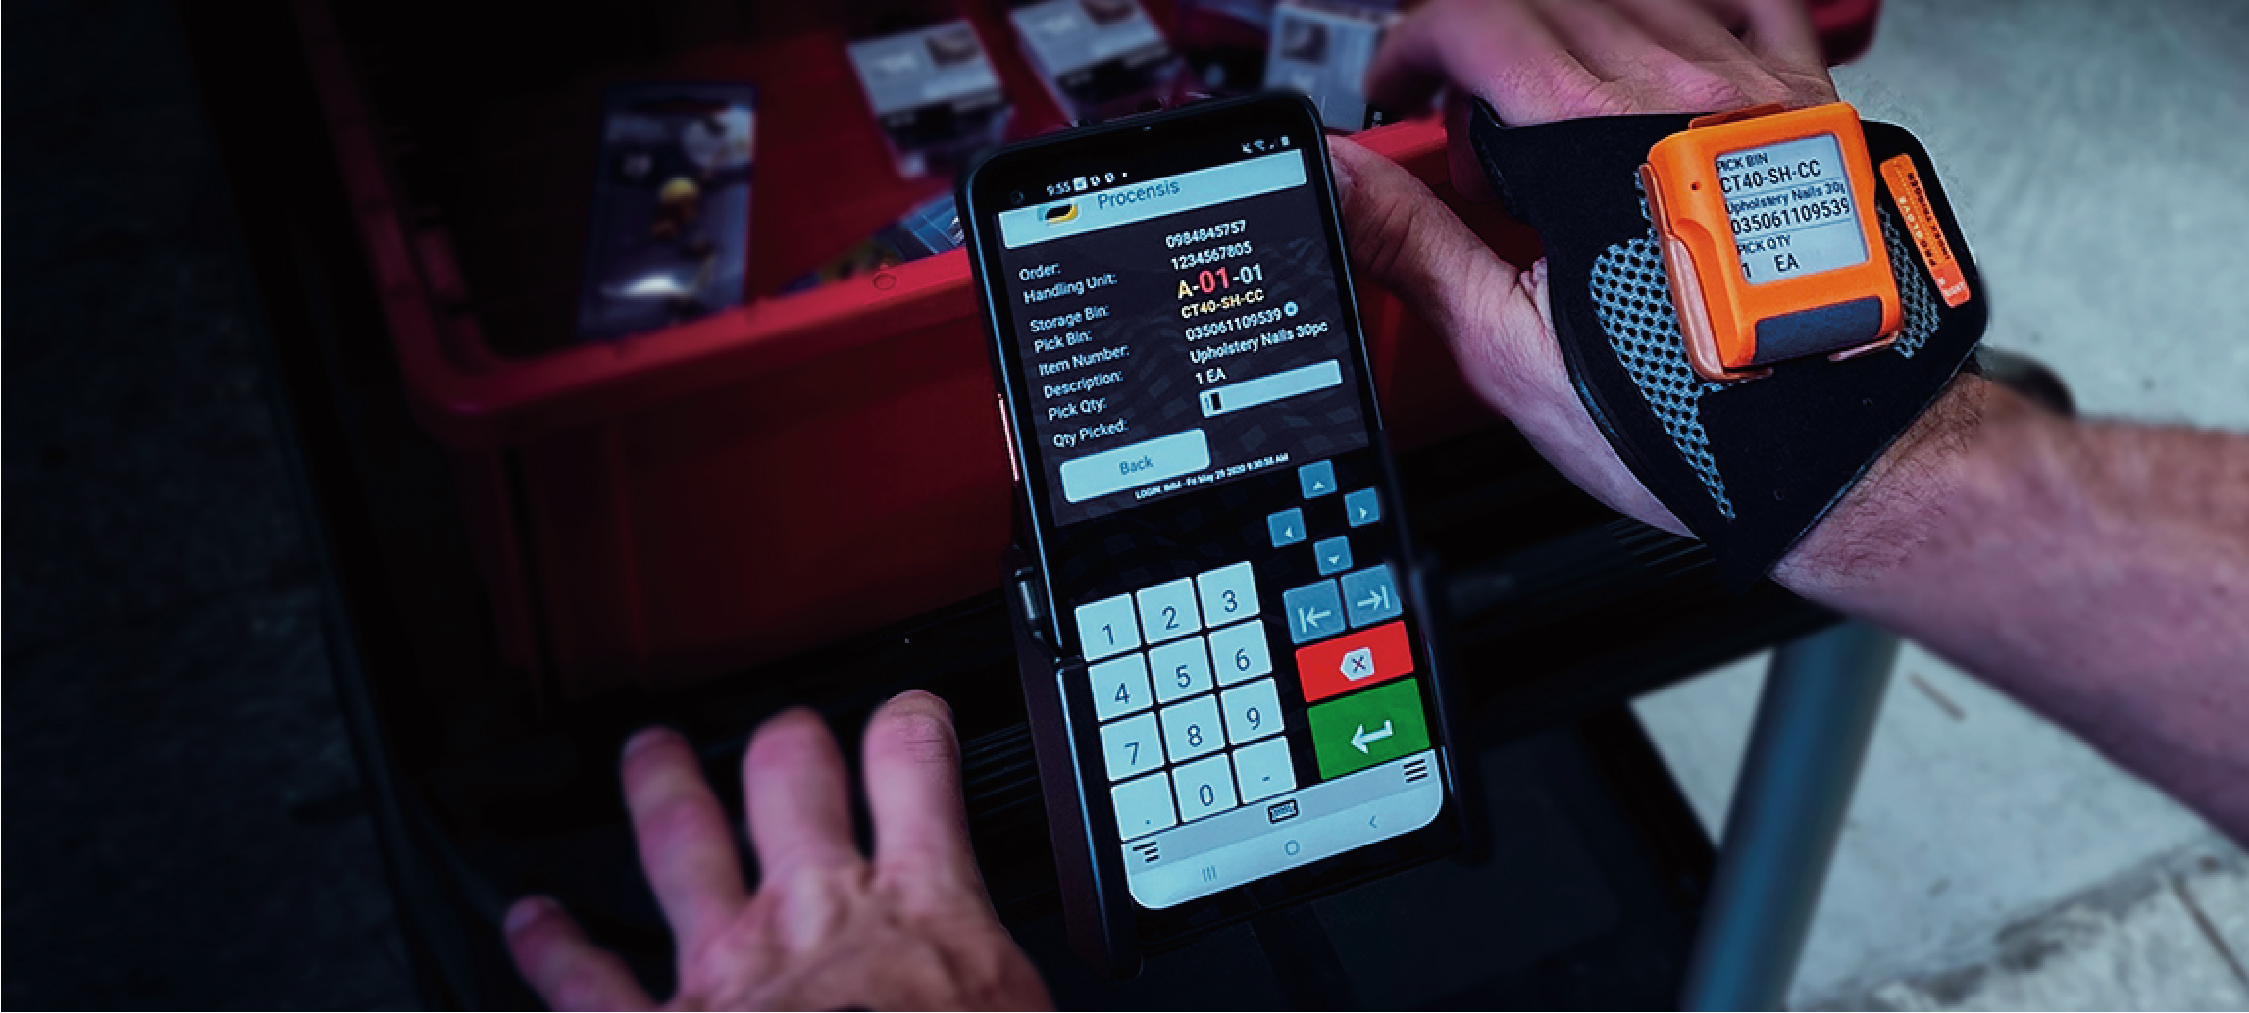 Samsung announces the Wearable Picking Bundle in collaboration with ProGlove, Procensis and Ivanti Wavelink